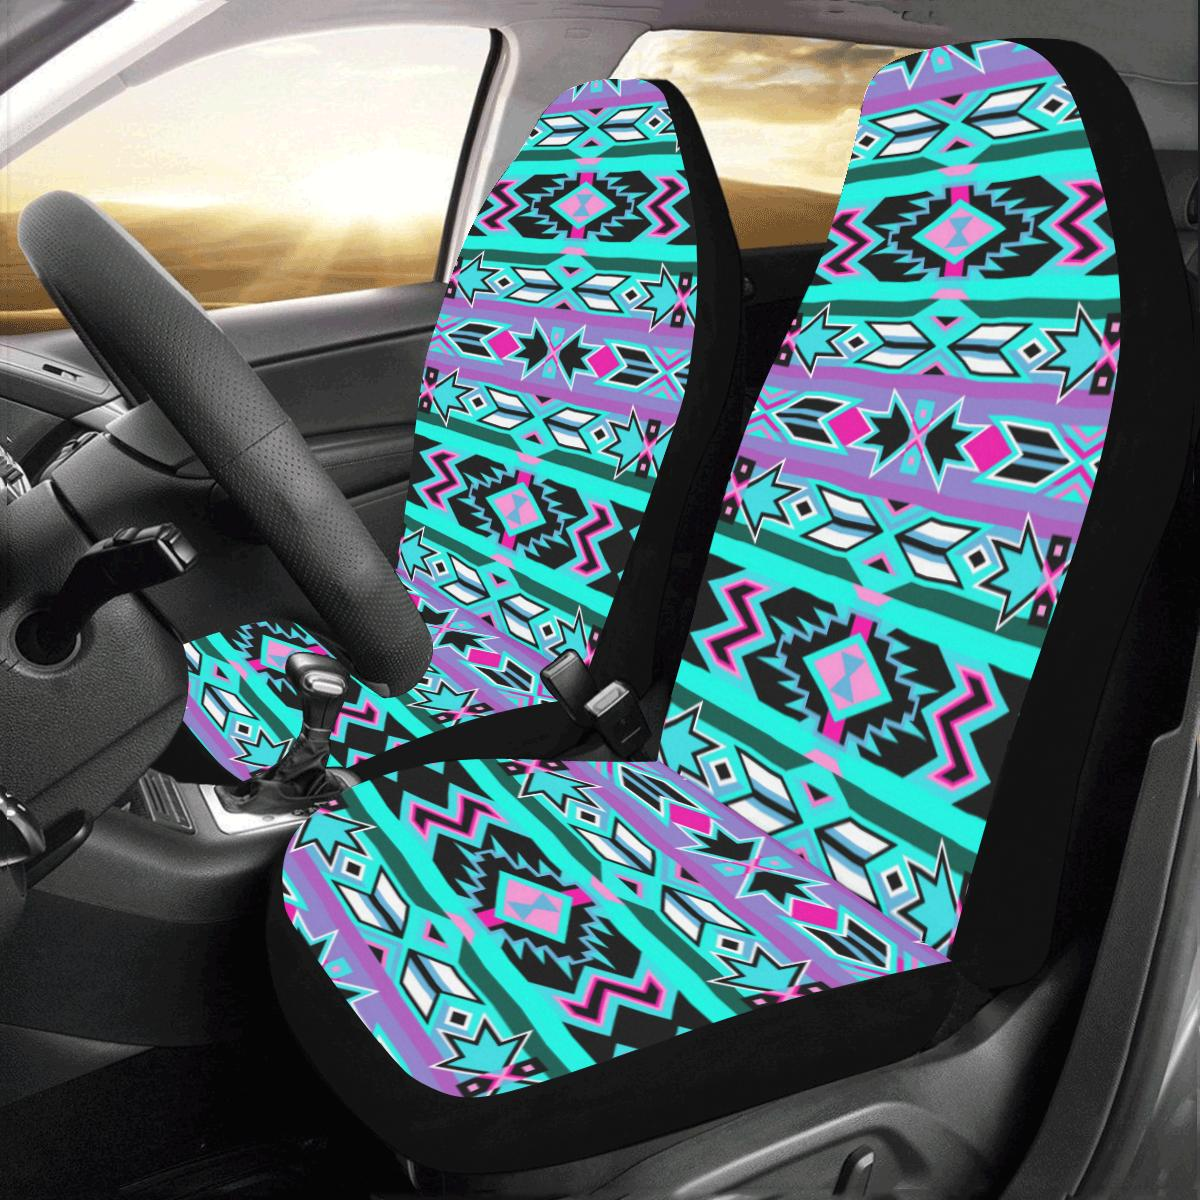 Northeast Journey Car Seat Covers (Set of 2) Car Seat Covers e-joyer